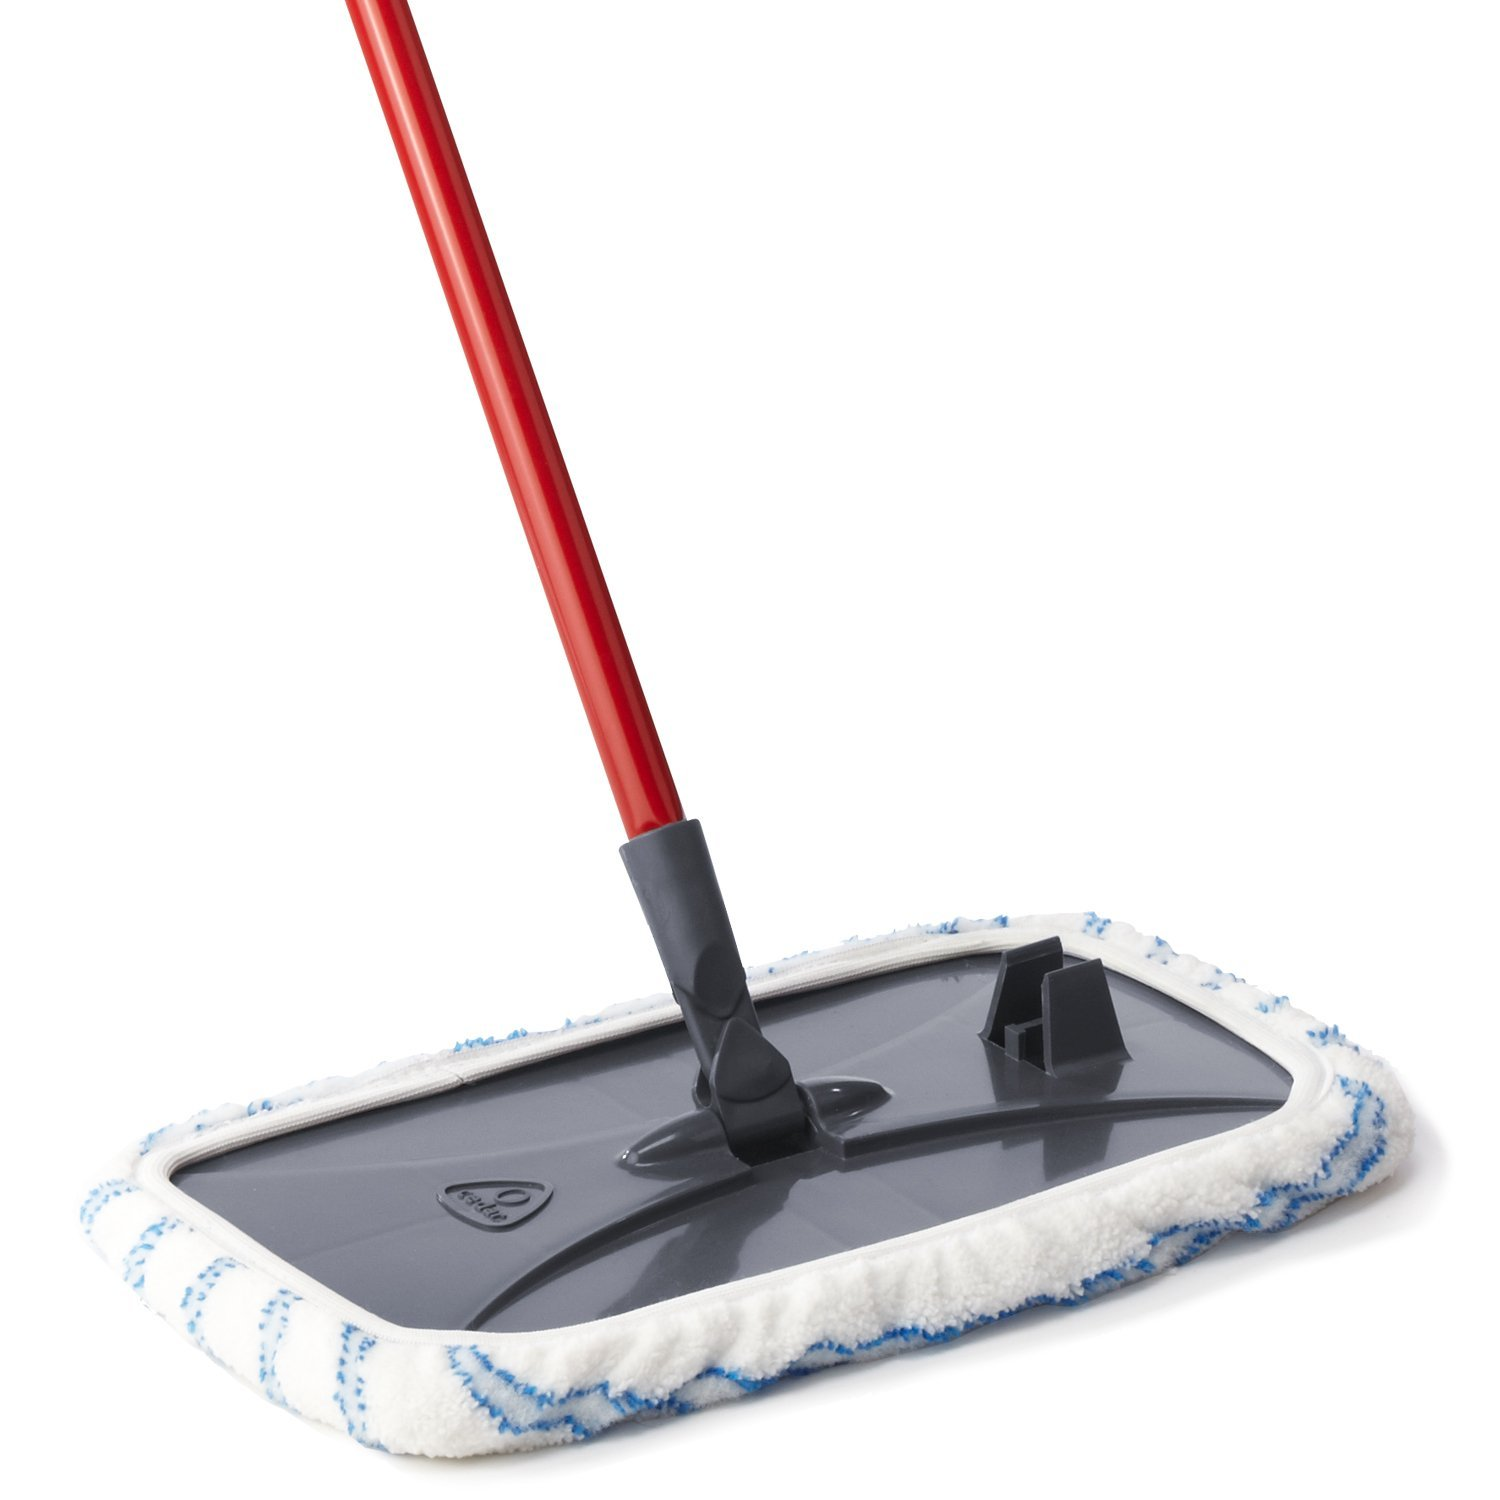 simple black and white dust mop for wood floor with plastic accent and red  stick to - Some Chic Dust Mop Design That Is Perfect For Wood Floor HomesFeed